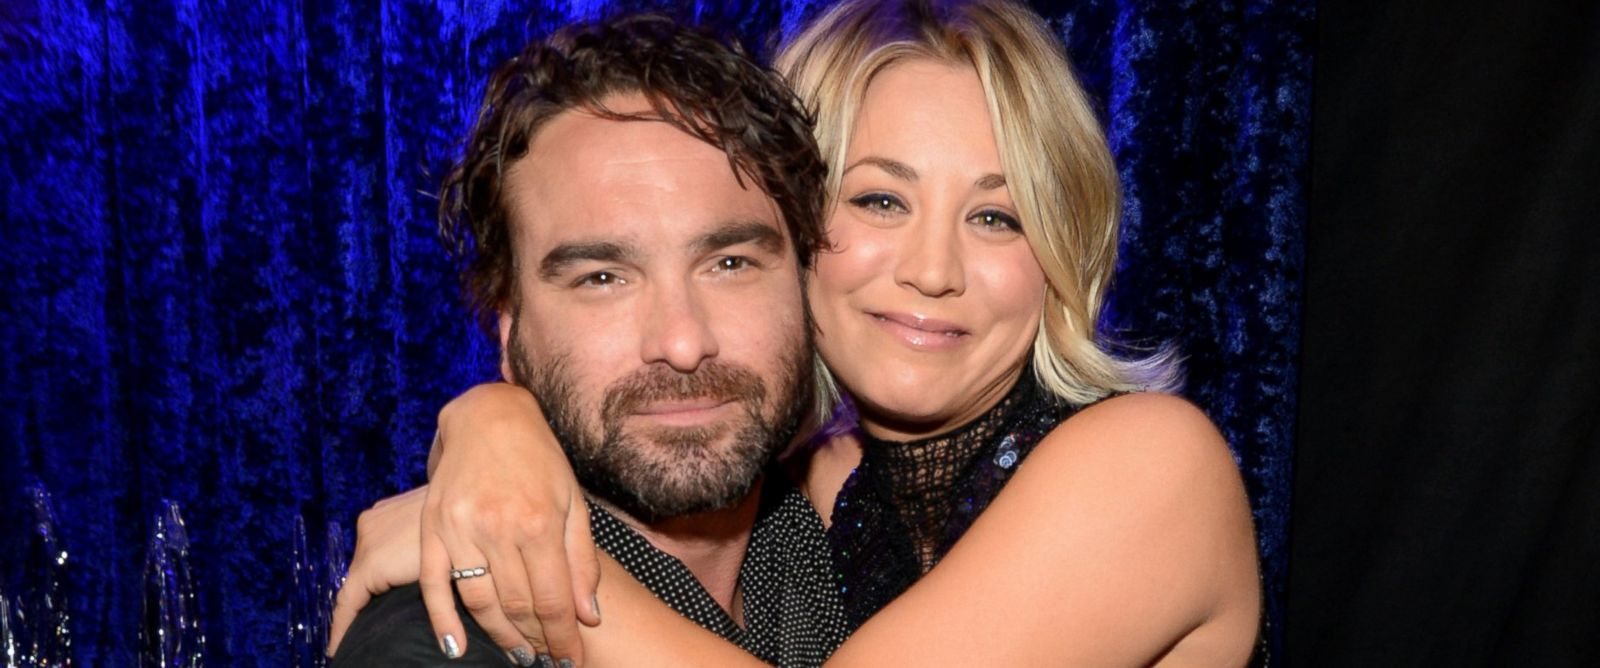 PHOTO: Actors Johnny Galecki, left, and Kaley Cuoco attend the Peoples Choice Awards 2016 at Microsoft Theater, Jan. 6, 2016 in Los Angeles.